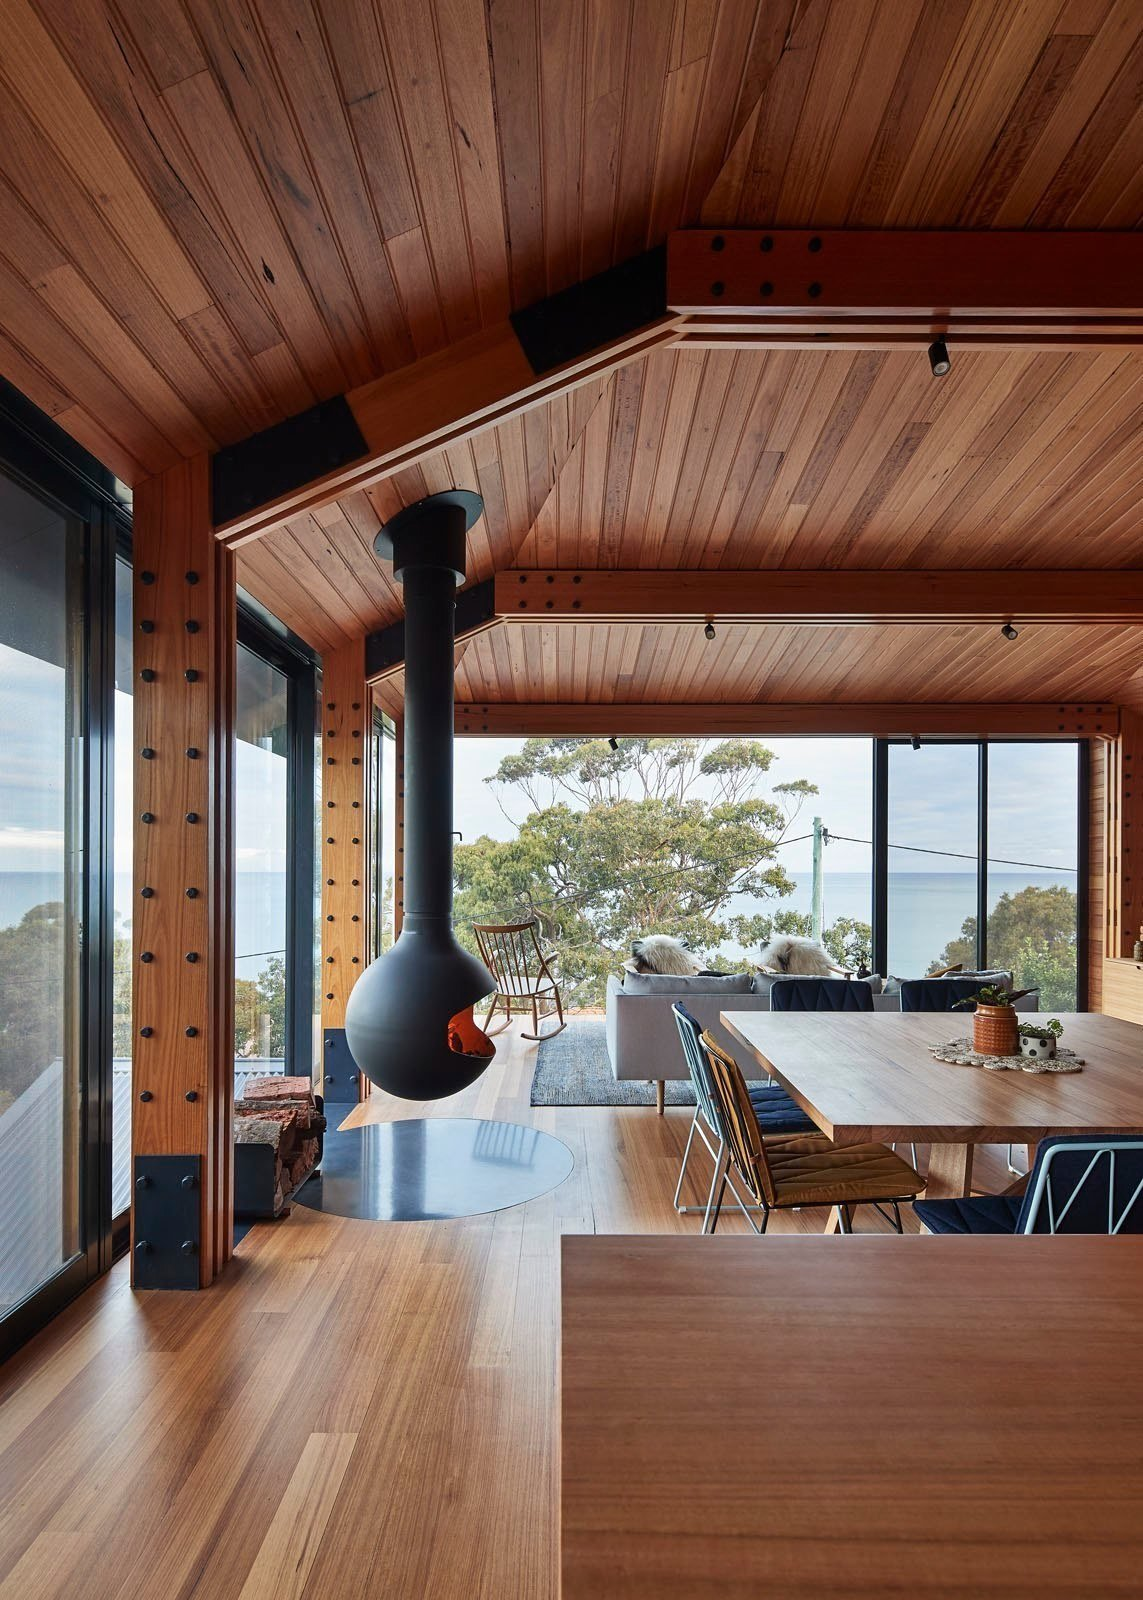 Photo 9 of 12 in A Great Ocean Road Shack With a View Gets a Sustainable Update